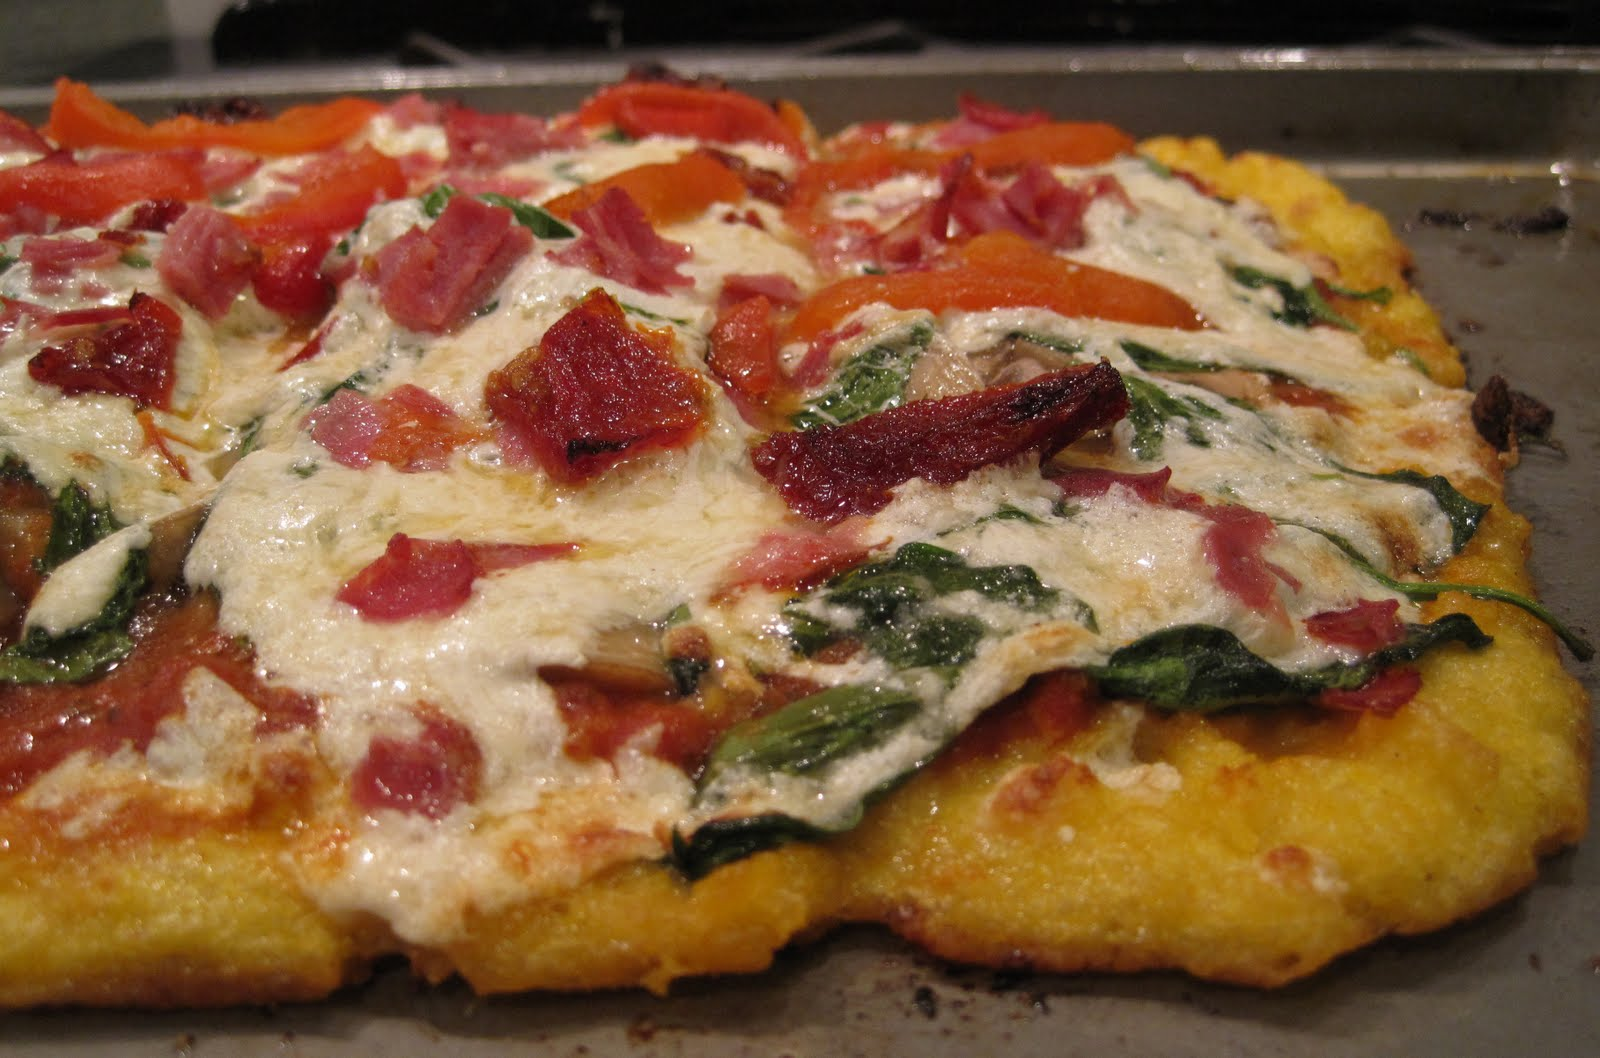 Yum Yum: Polenta Pizza